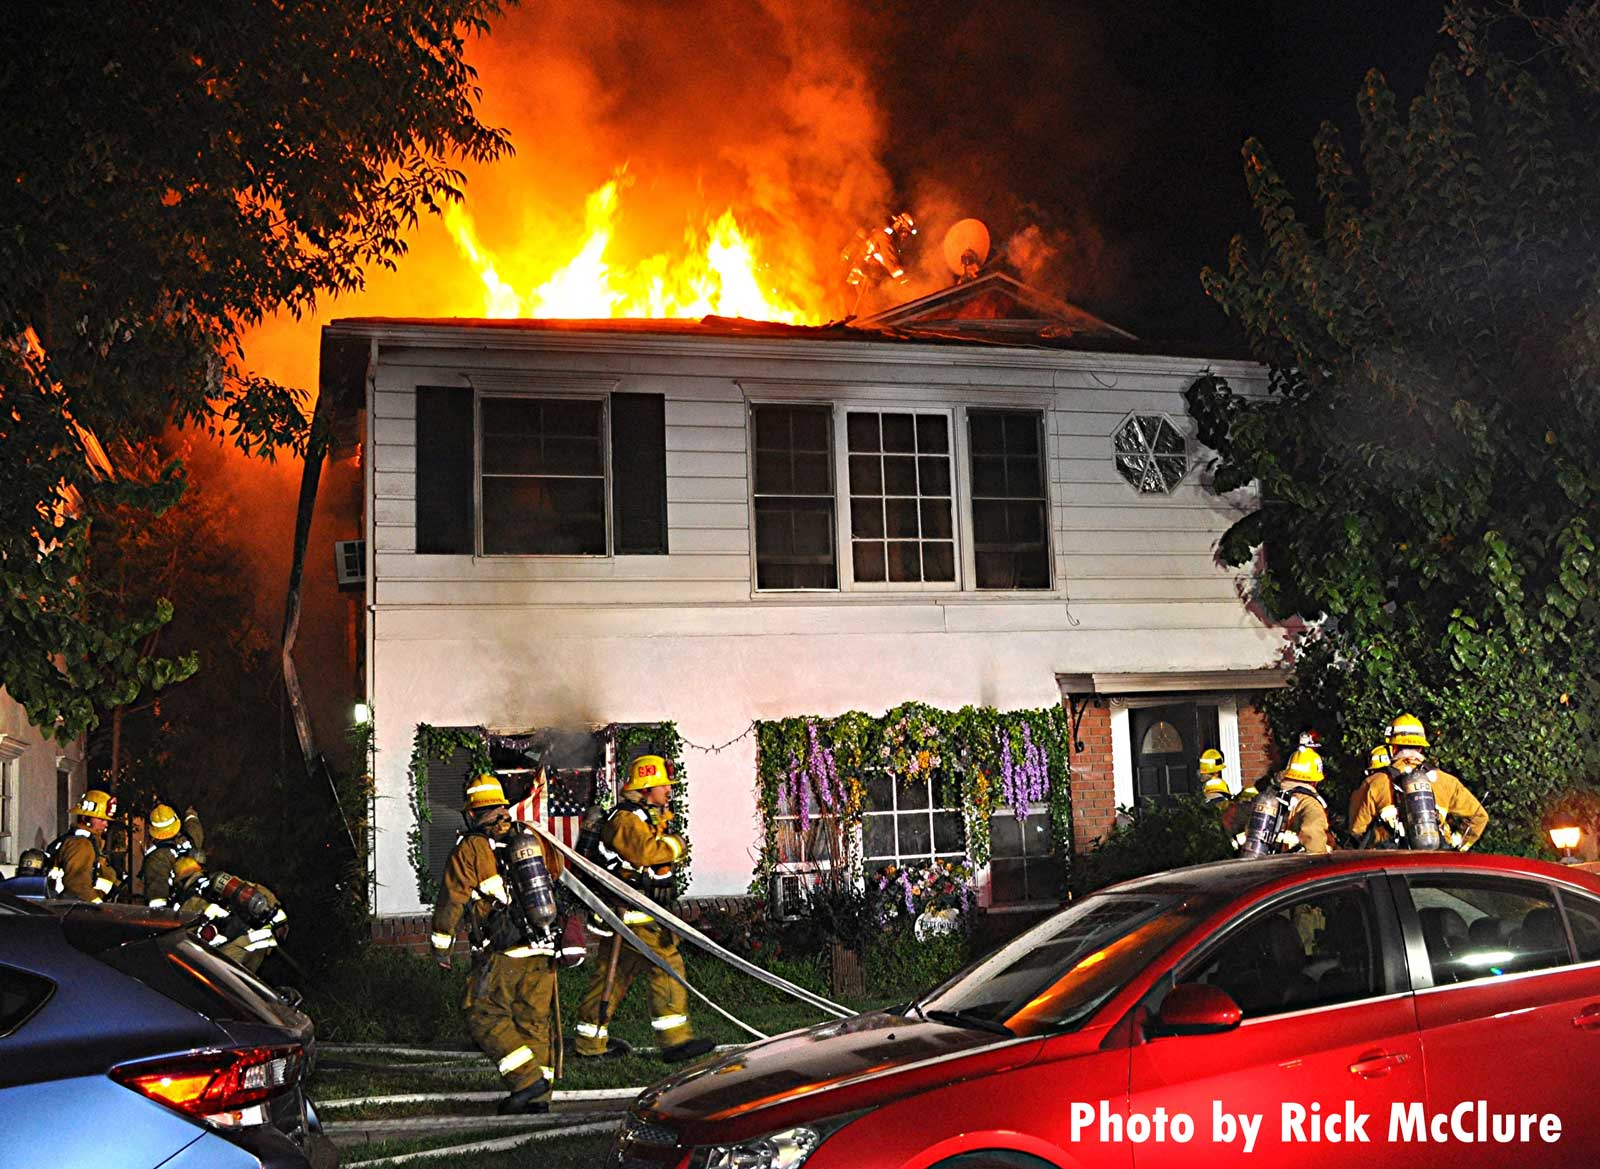 Flames rage from the home